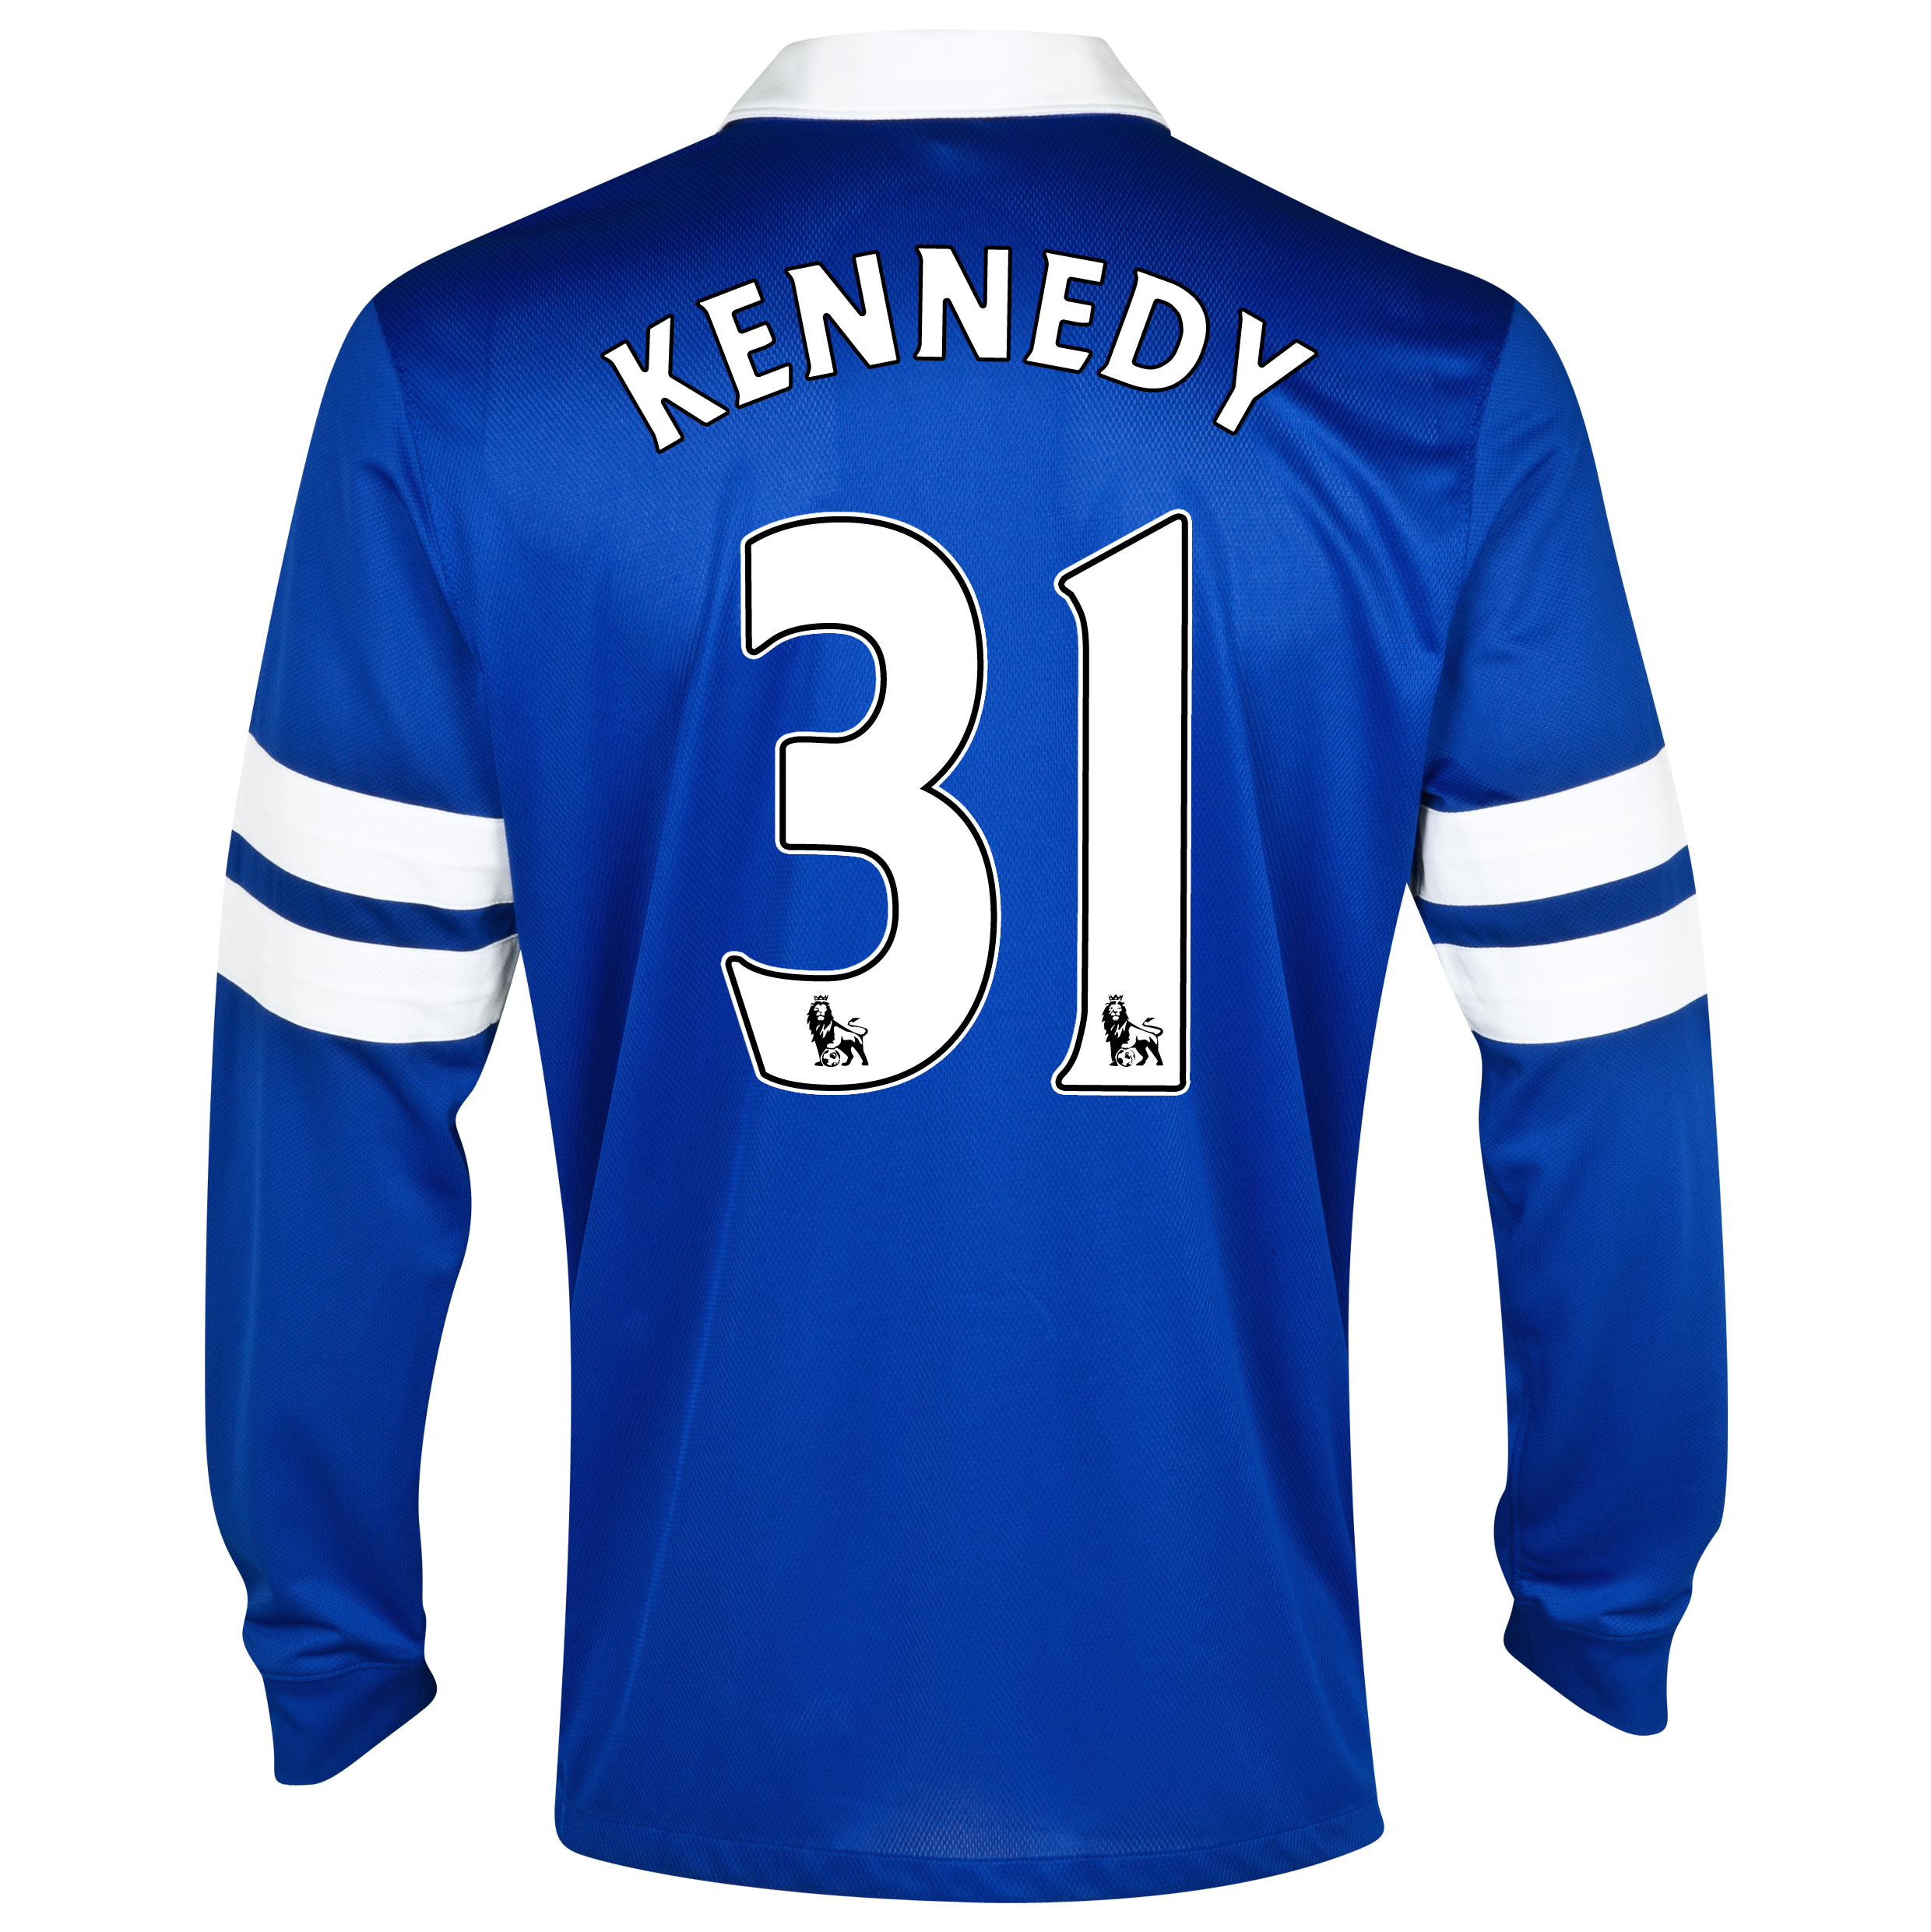 Everton Home Shirt 2013/14 - Long Sleeved Blue with Kennedy 31 printing